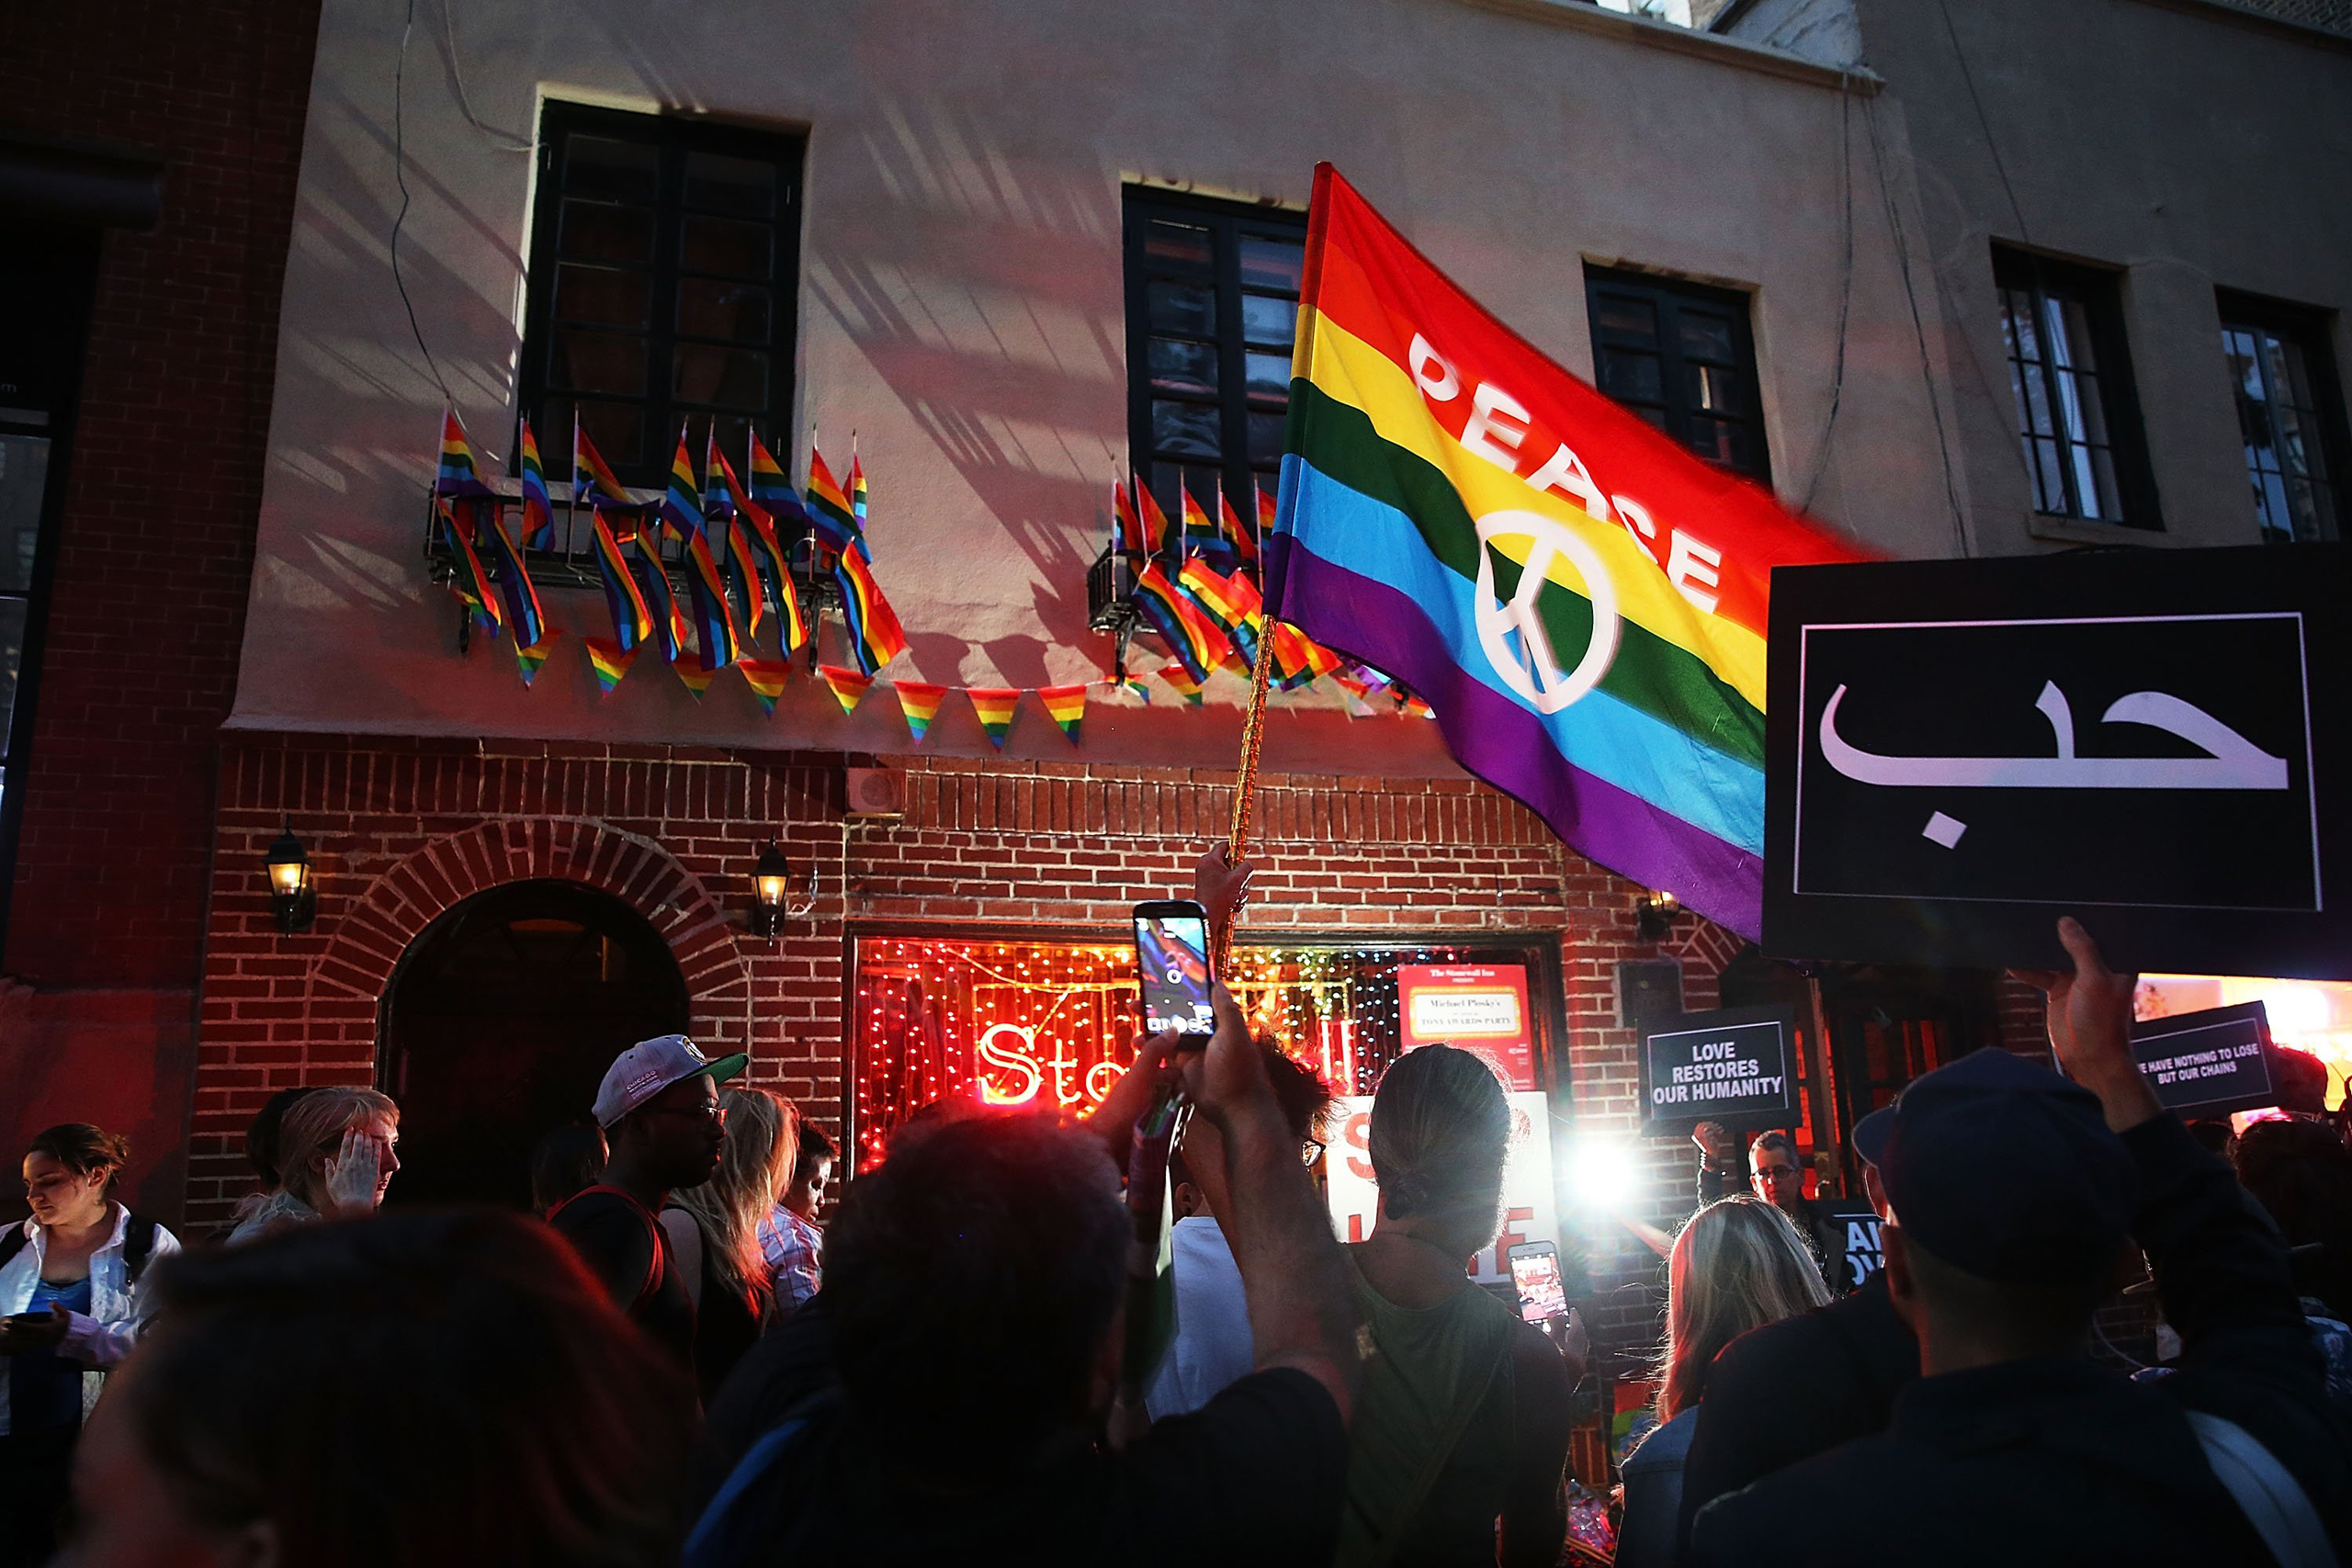 Mourners gather outside of the iconic New York City gay and lesbian bar the Stonewall Inn to light candles, lay flowers and grieve for those killed in Orlando on June 12, 2016.